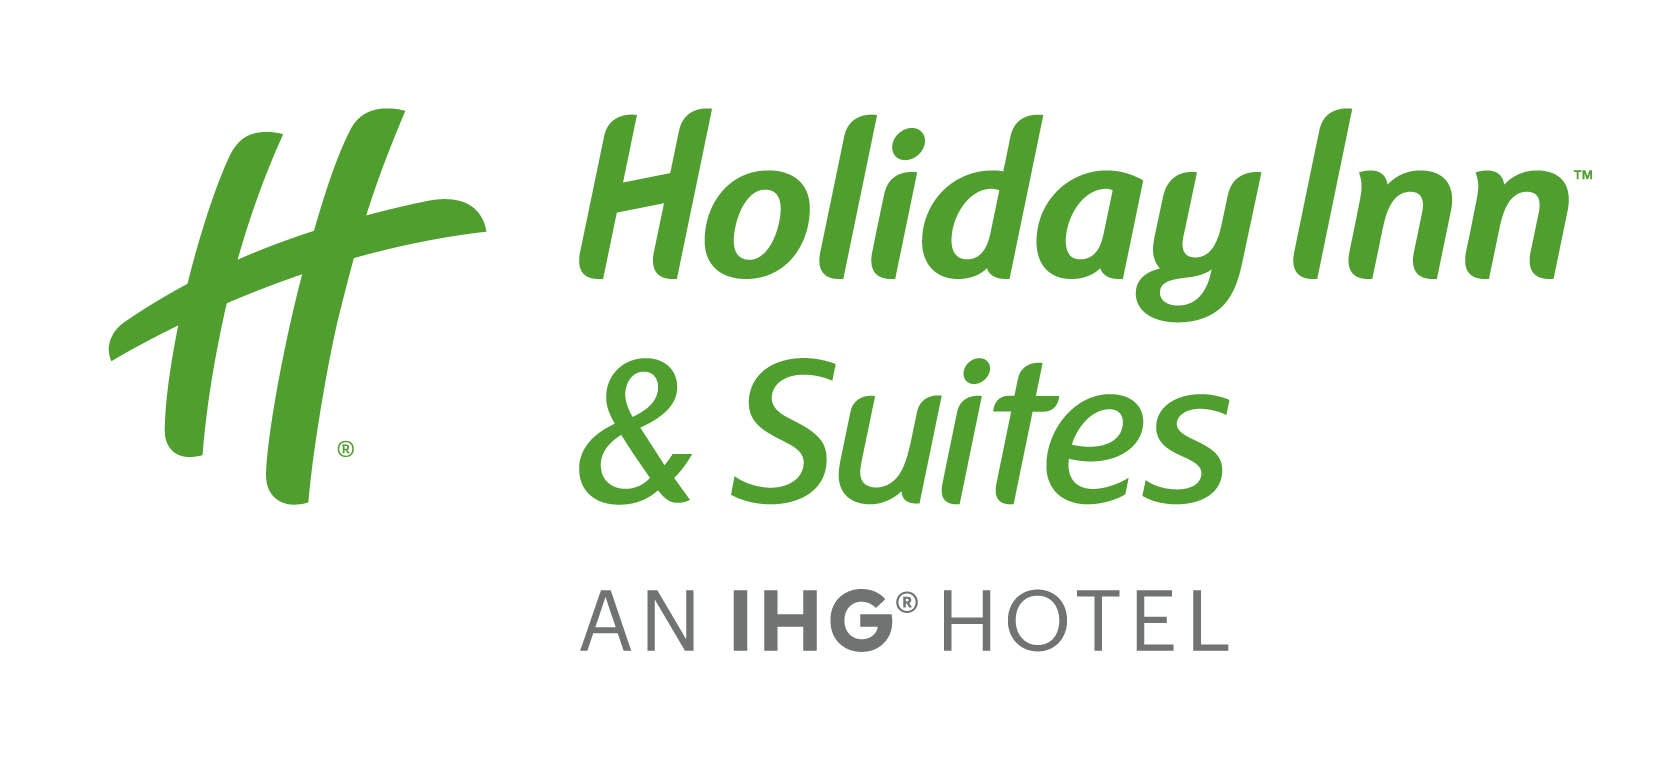 Holiday Inn logo 2018.jpg